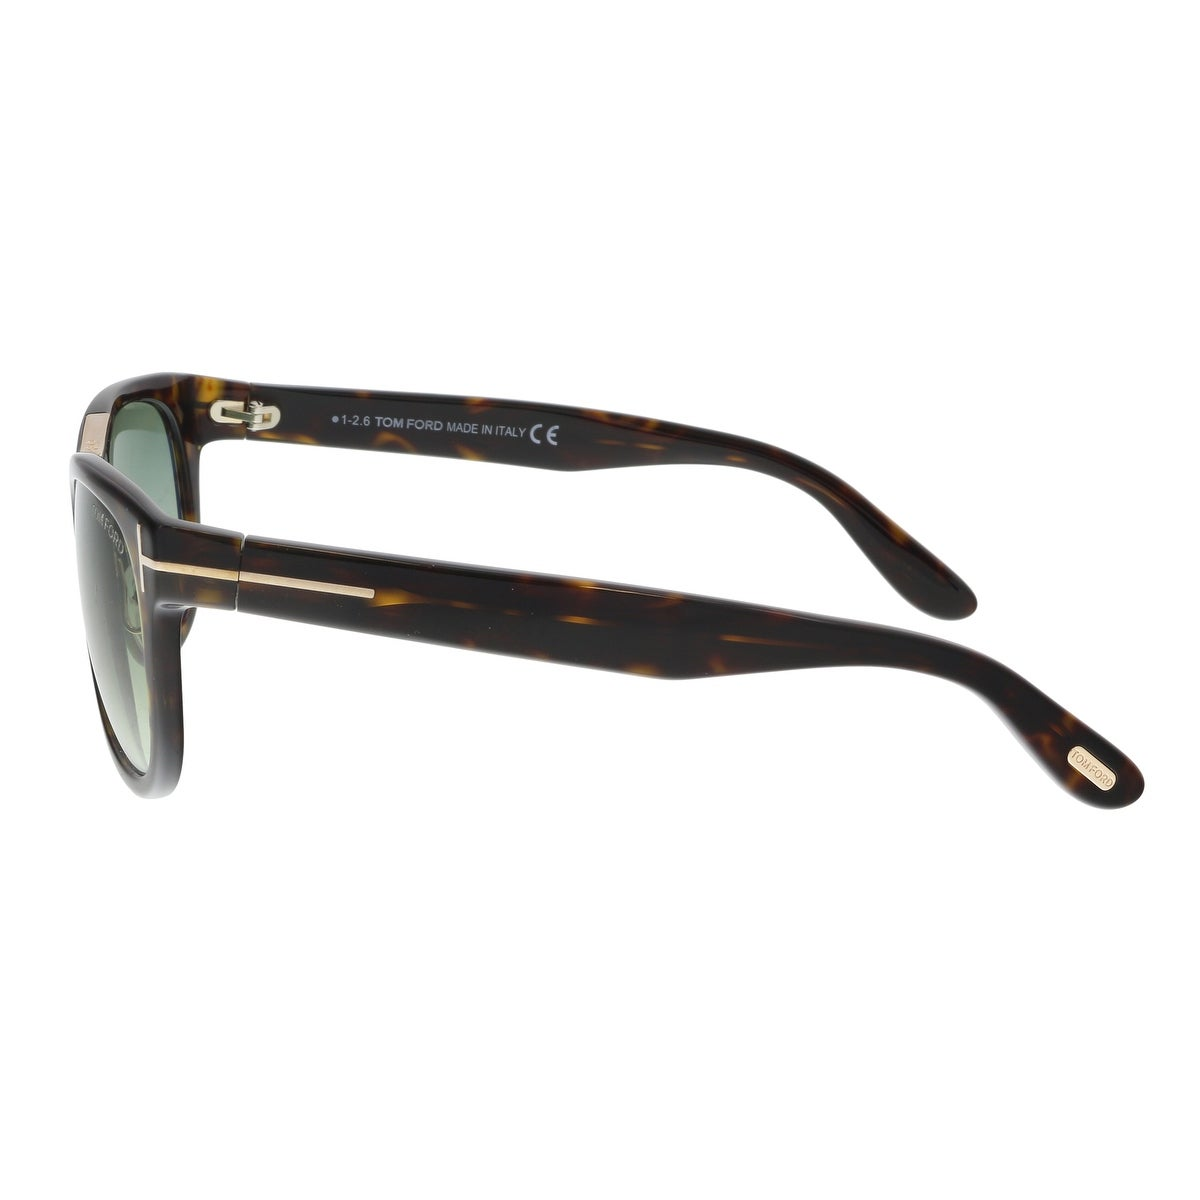 b919aaf5031 Shop Tom Ford FT0045 S 52P JACK Tortoise Square Sunglasses - 51-20-135 -  Free Shipping Today - Overstock - 19223160